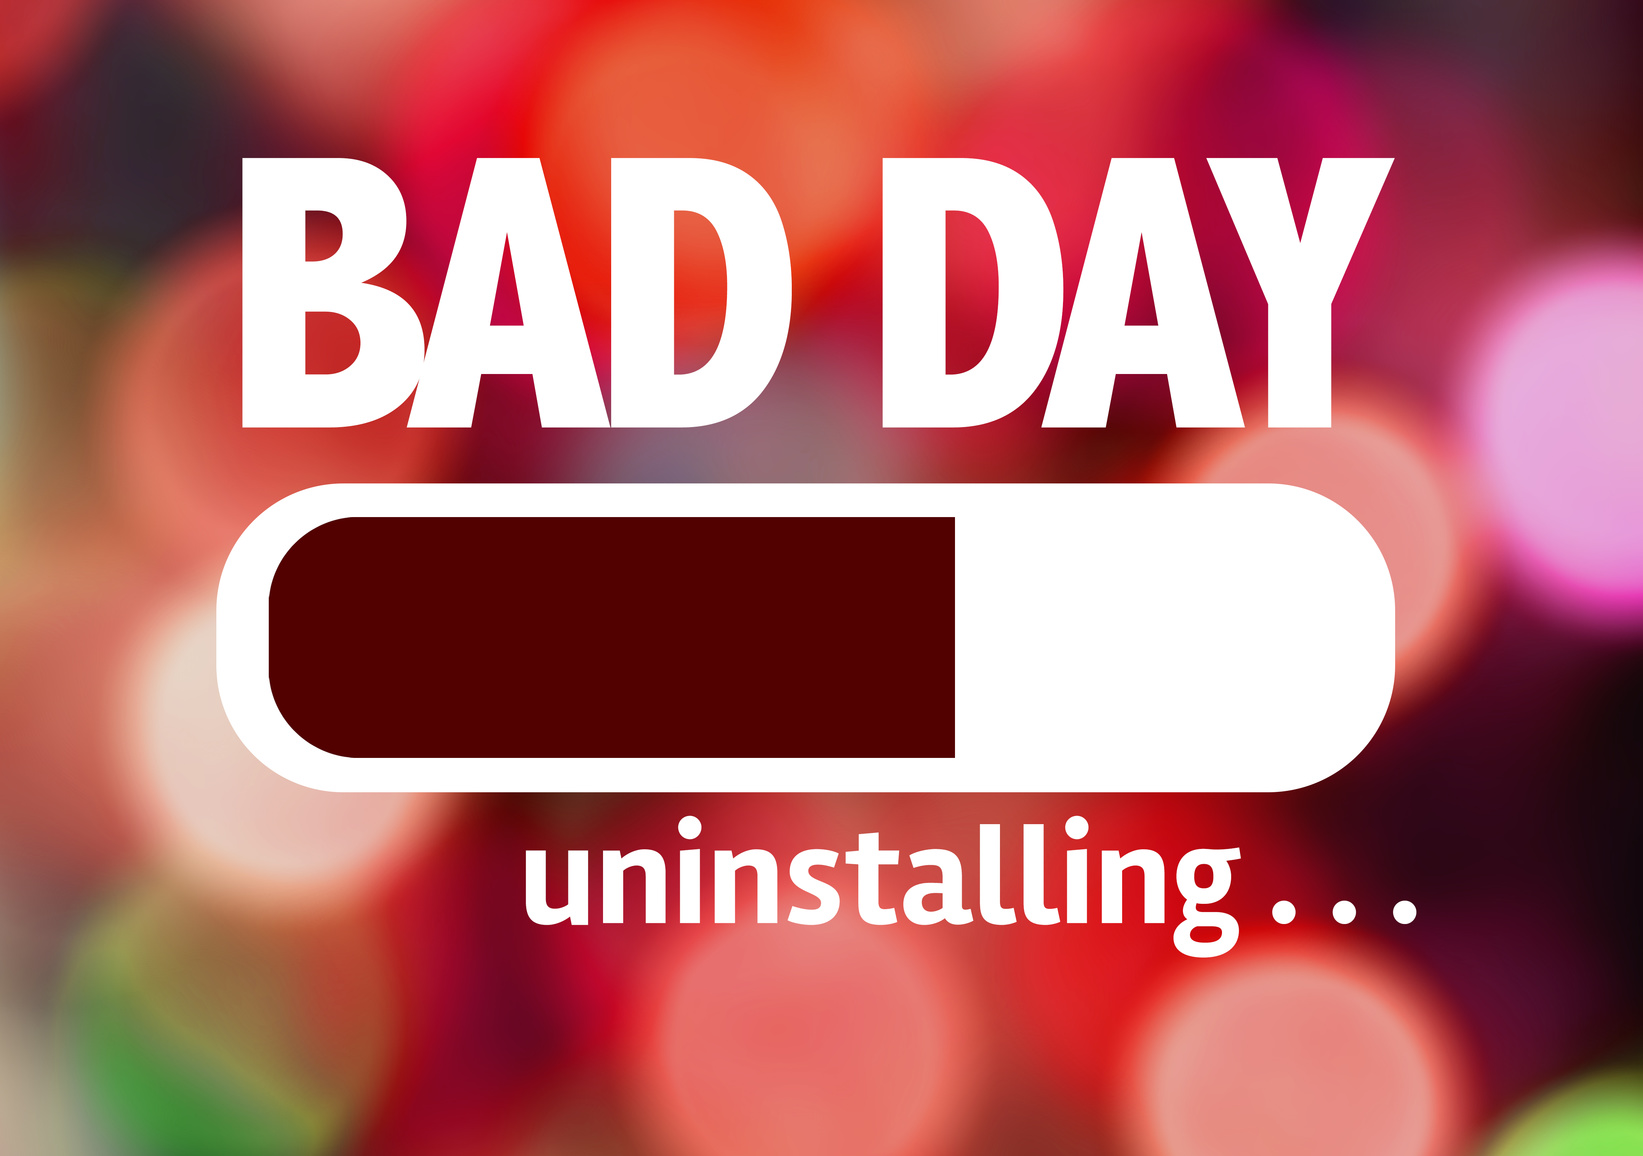 7 Ways To Make A Bad Day Better